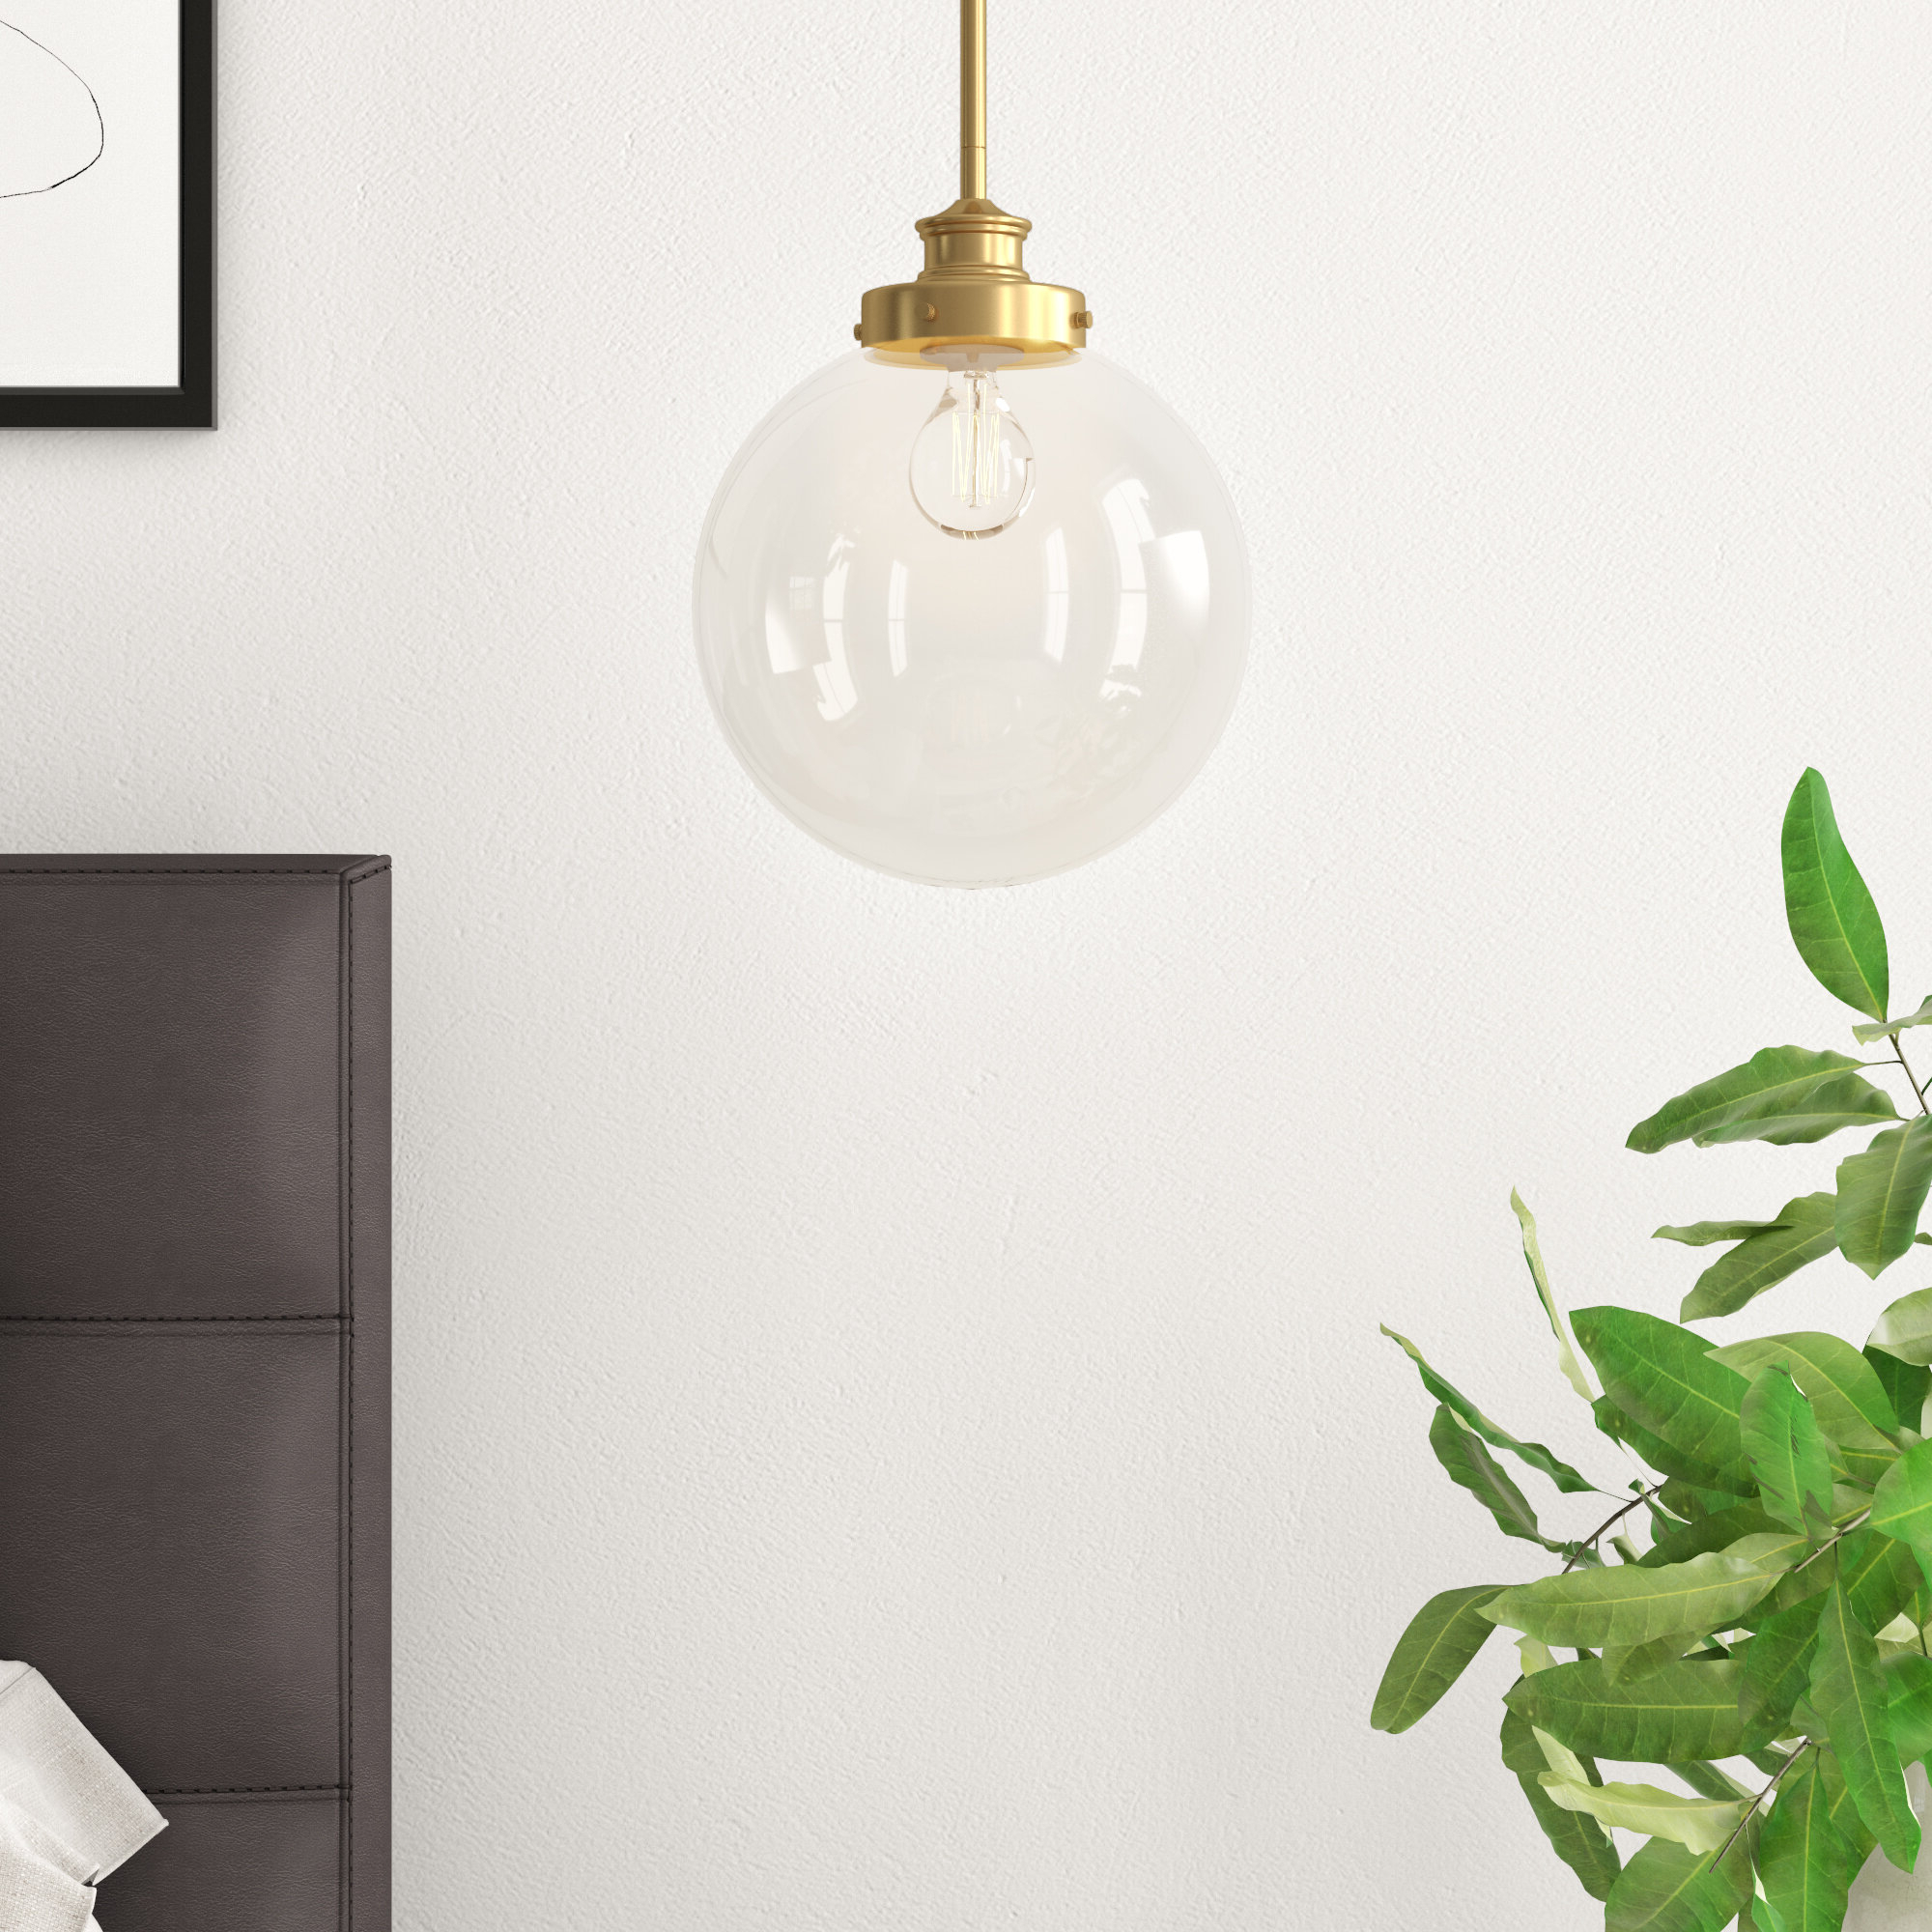 Bundy 1 Light Single Globe Pendants Pertaining To Best And Newest Cayden 1 Light Single Globe Pendant (View 4 of 20)